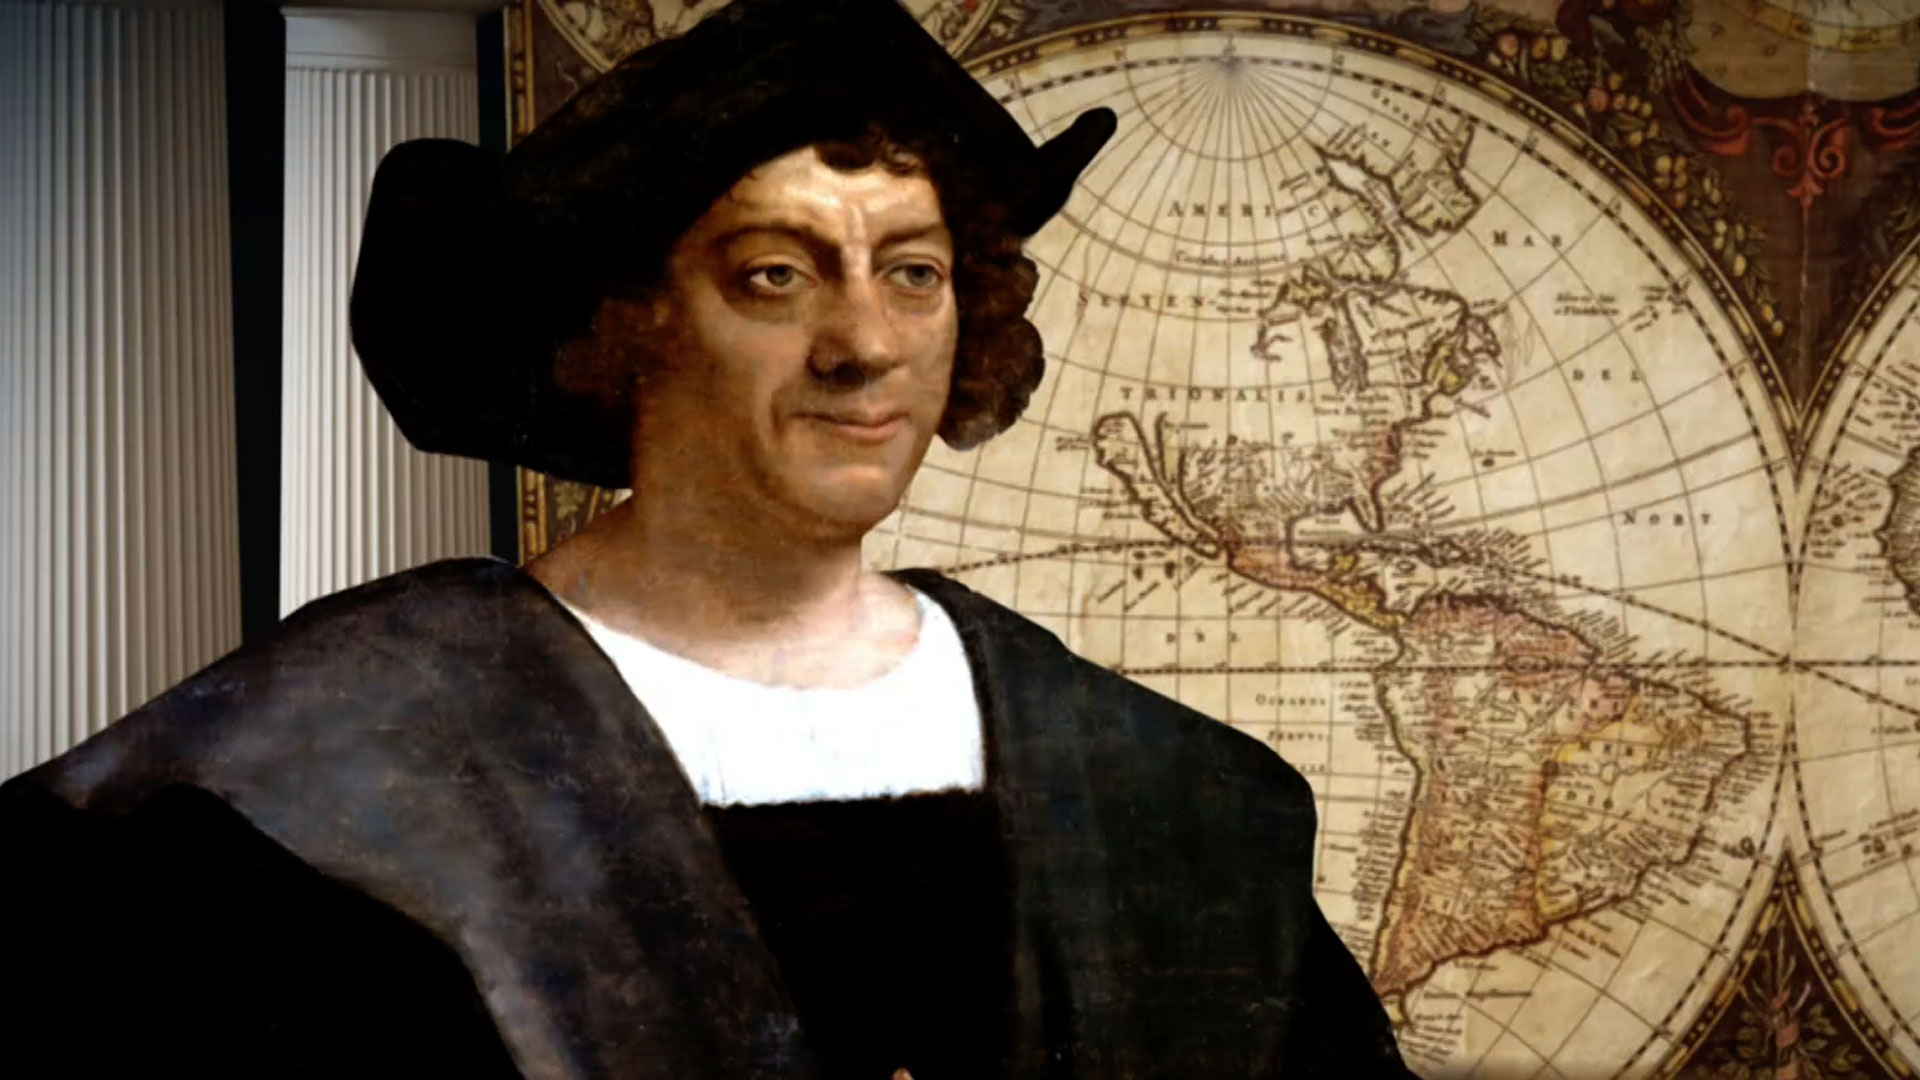 Setting Brushfires 10-11-2019: The Truth About Christopher Columbus With Andre DiMino - Setting Brushfires